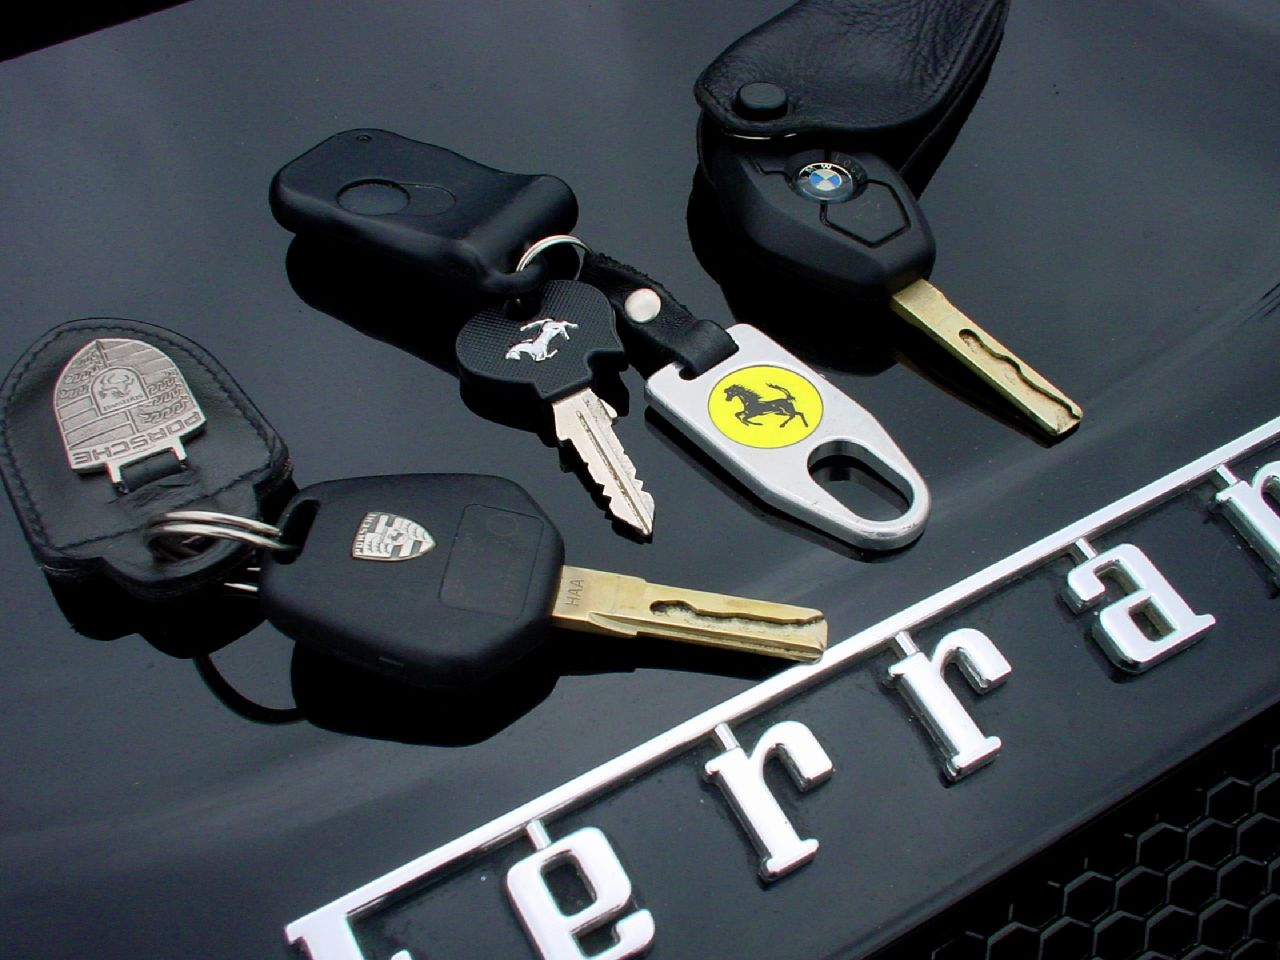 Modifying Foreign Key Definitions